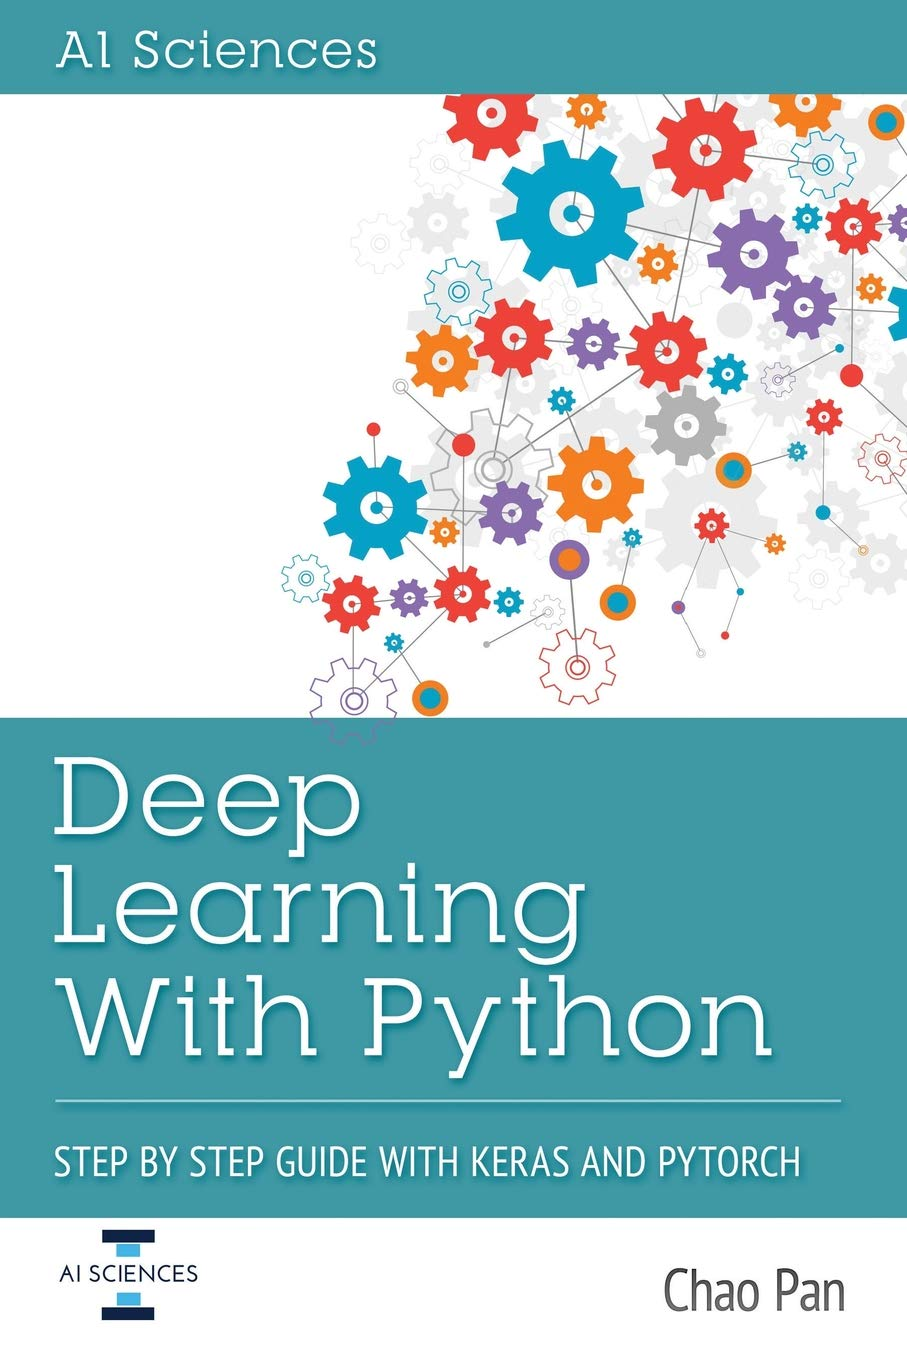 Deep Learning With Python: Step By Step Guide With Keras and Pytorch: Chao  Pan: 9781721250974: Amazon.com: Books